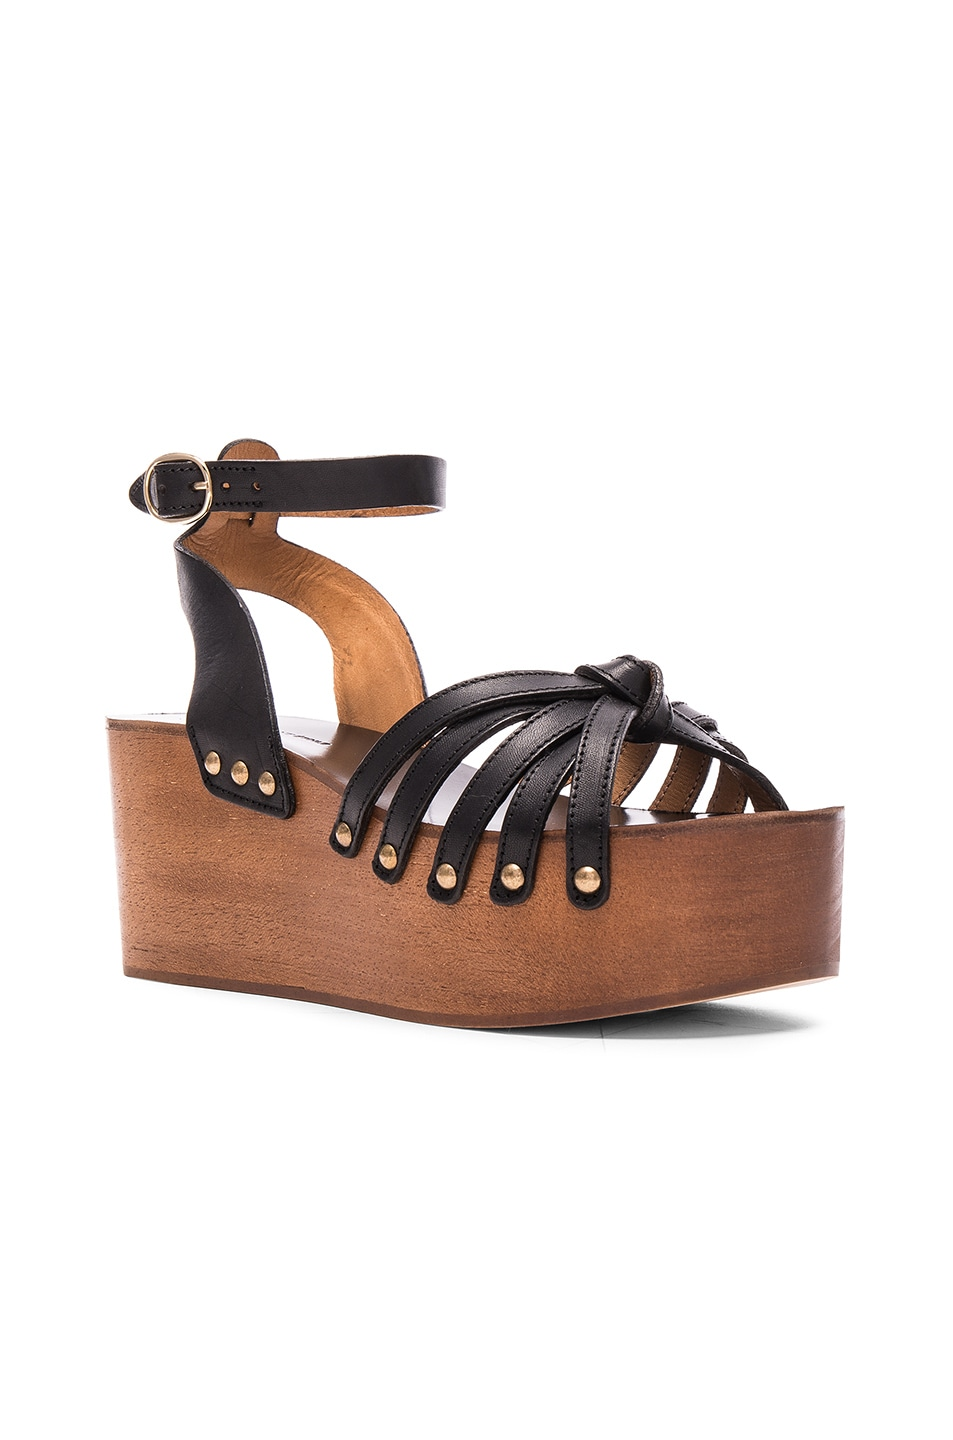 a0111880d6f Image 2 of Isabel Marant Etoile Zia Leather Wedge Sandals in Black